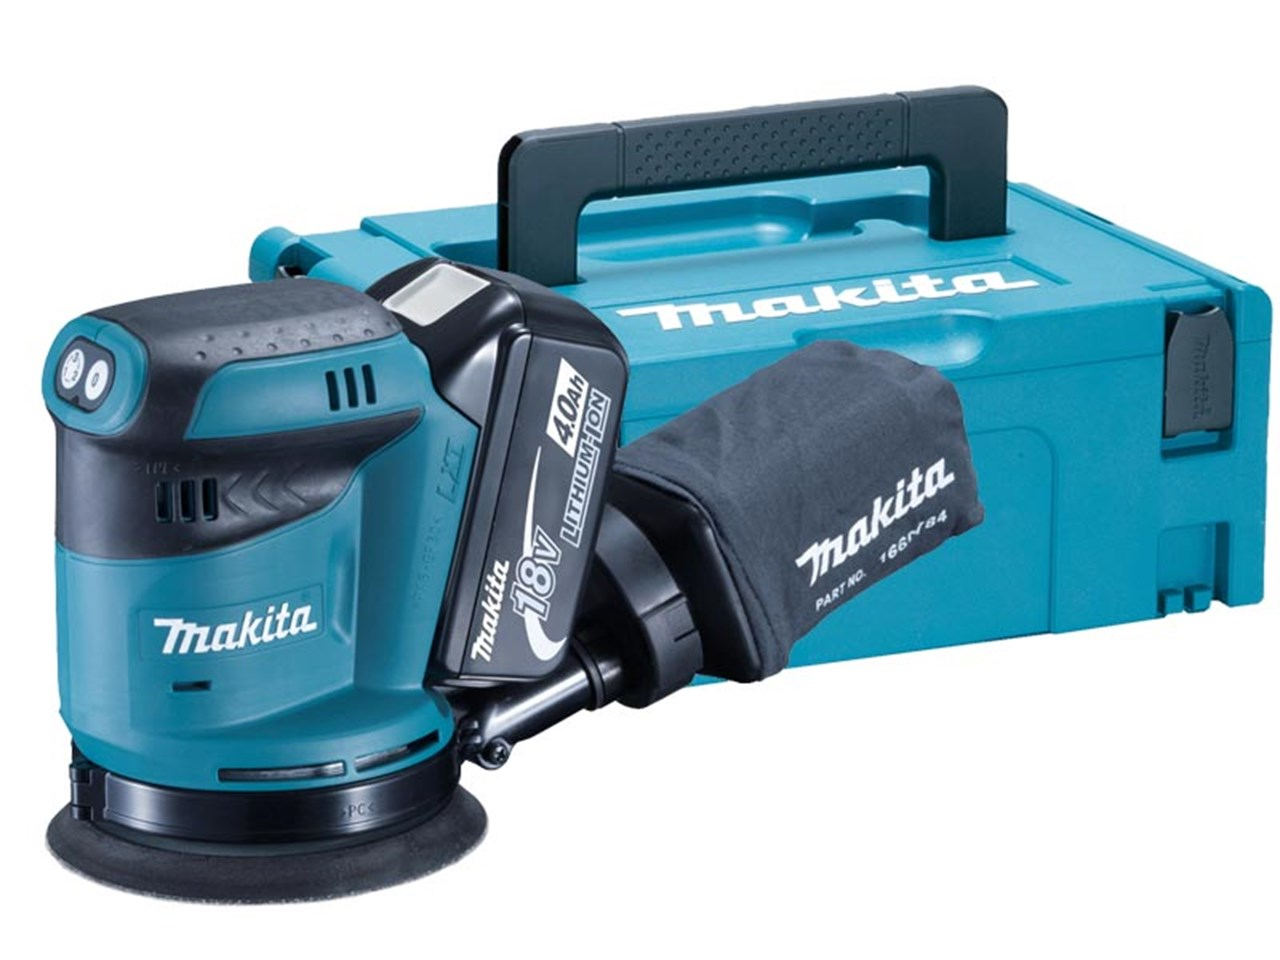 Detailed information about Makita bo5031 random orbit sander